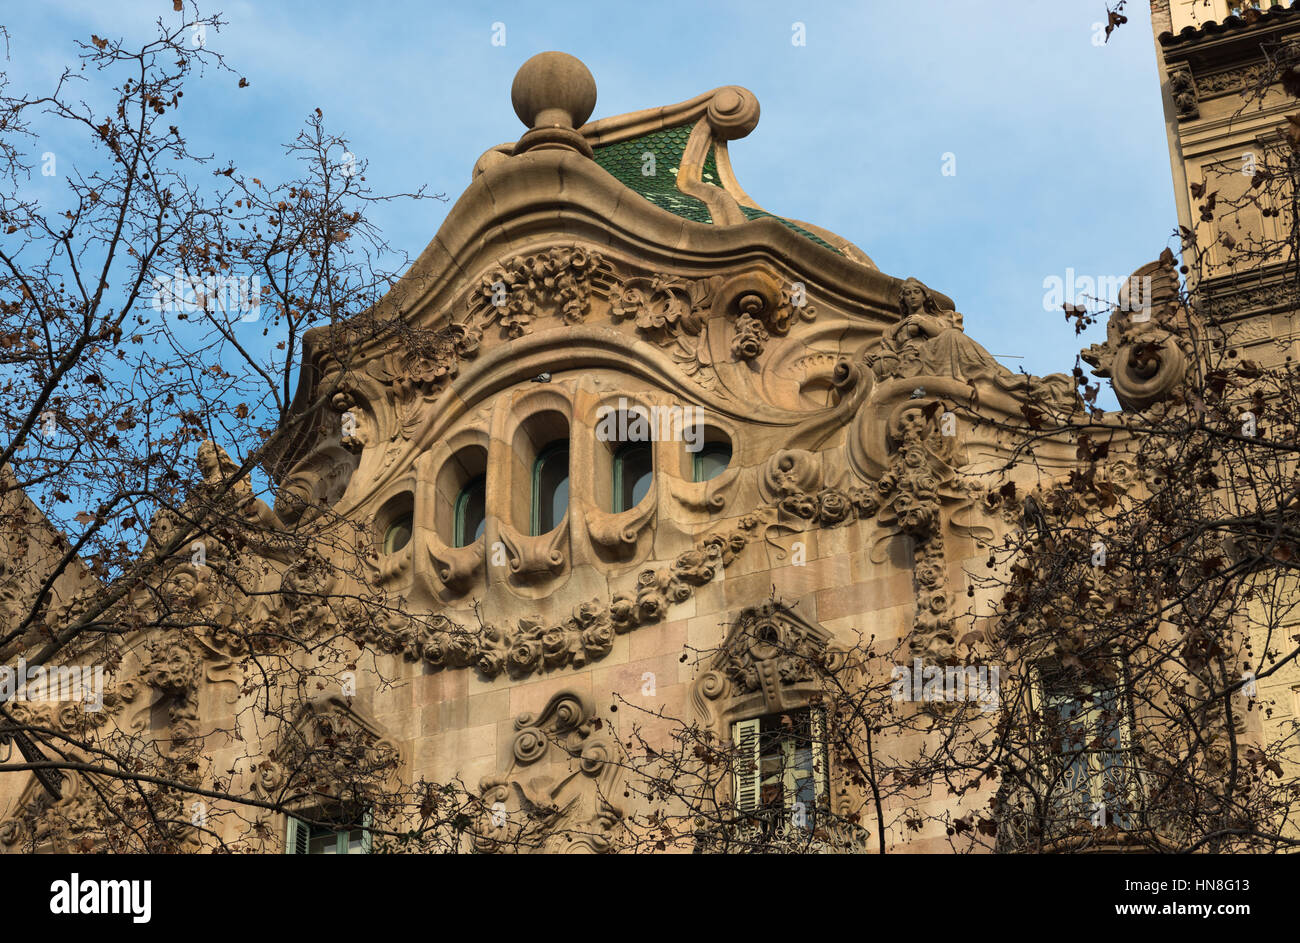 Modernist architecture on Diagonal Avenue, Barcelona, Spain Stock Photo